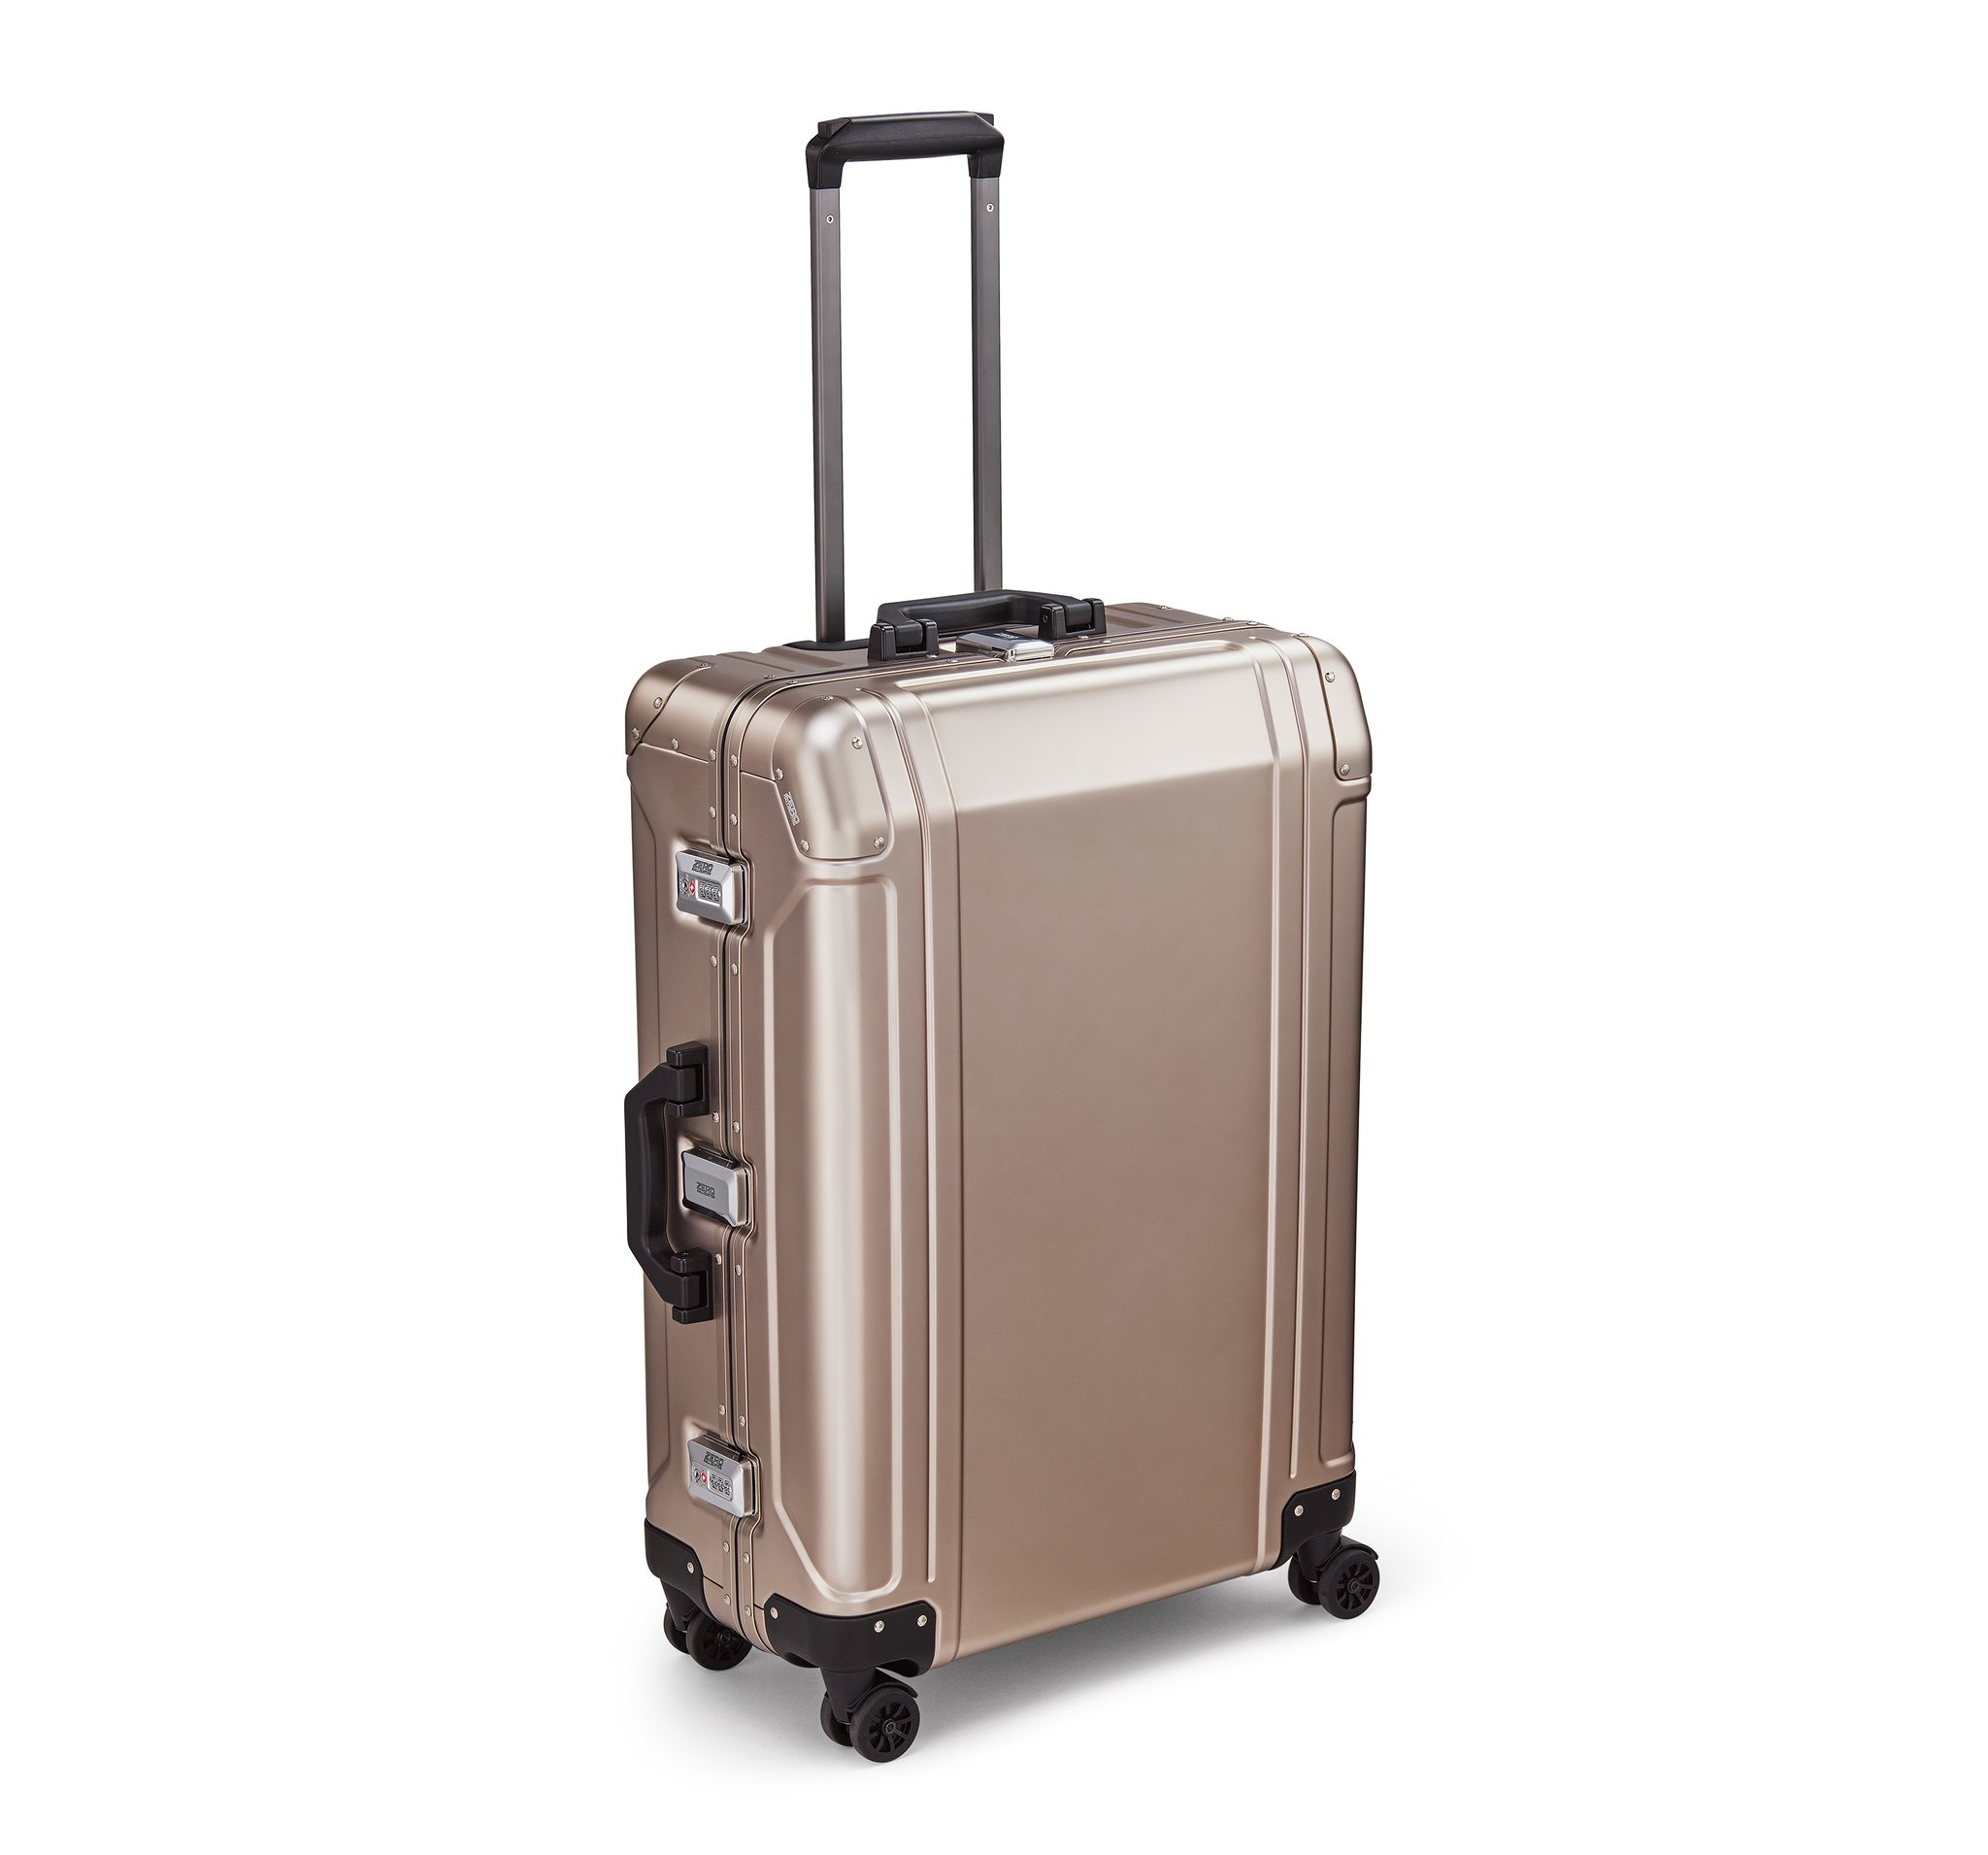 "Geo Aluminum 3.0 - 26"" 4-Wheel Spinner Travel Case by Zero Halliburton (Color: Bronze)"